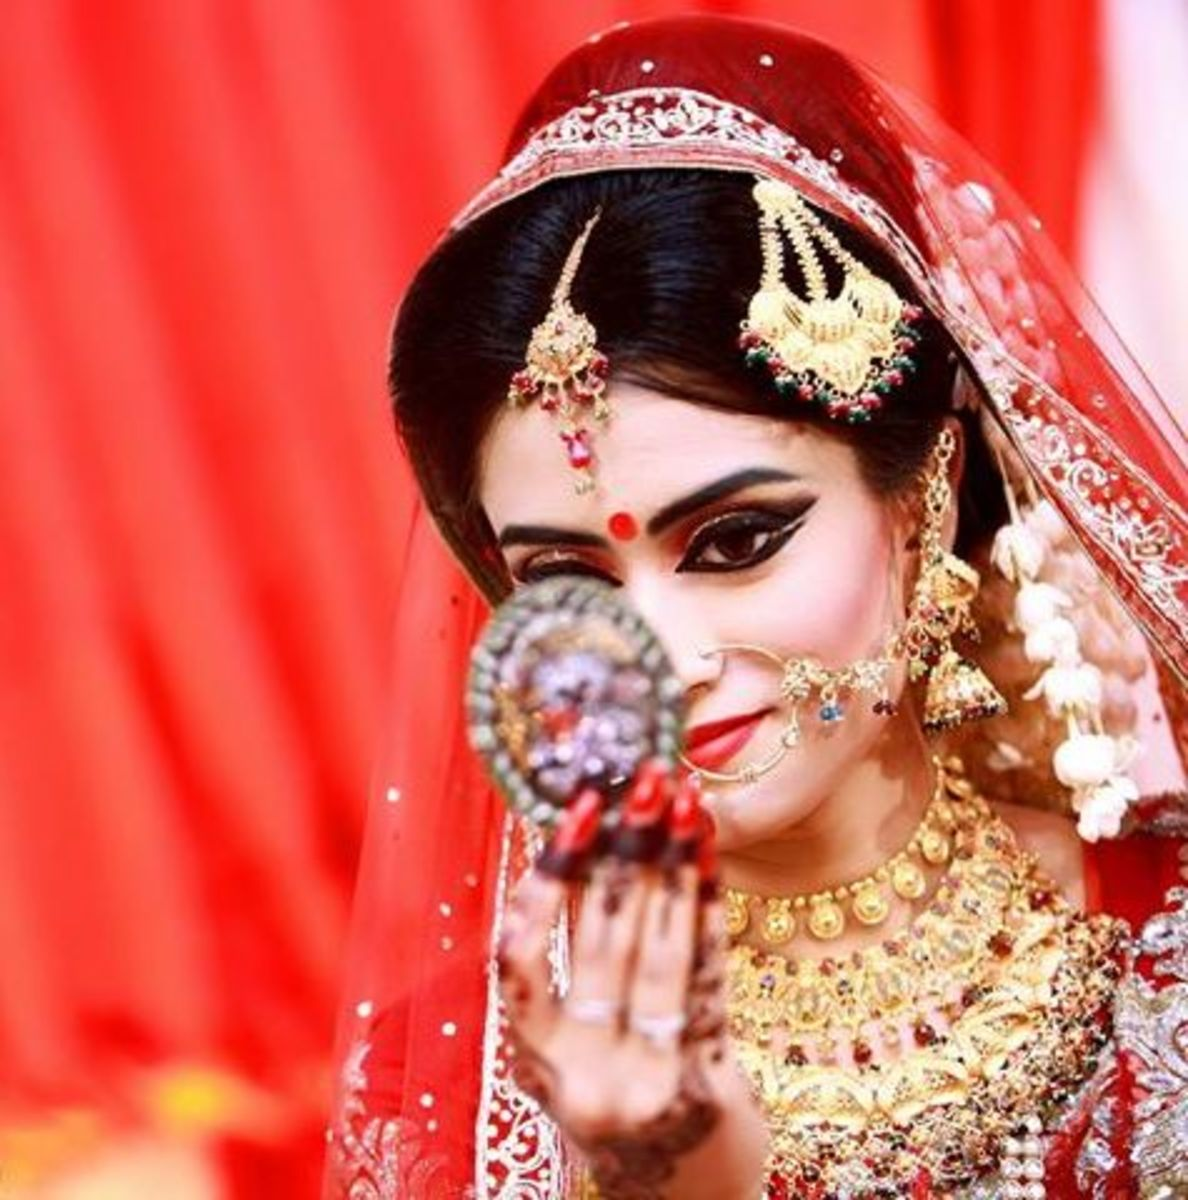 Topu's wife Naziba again in a red bridal saree and beautiful bridal makeup in Bangladesh.